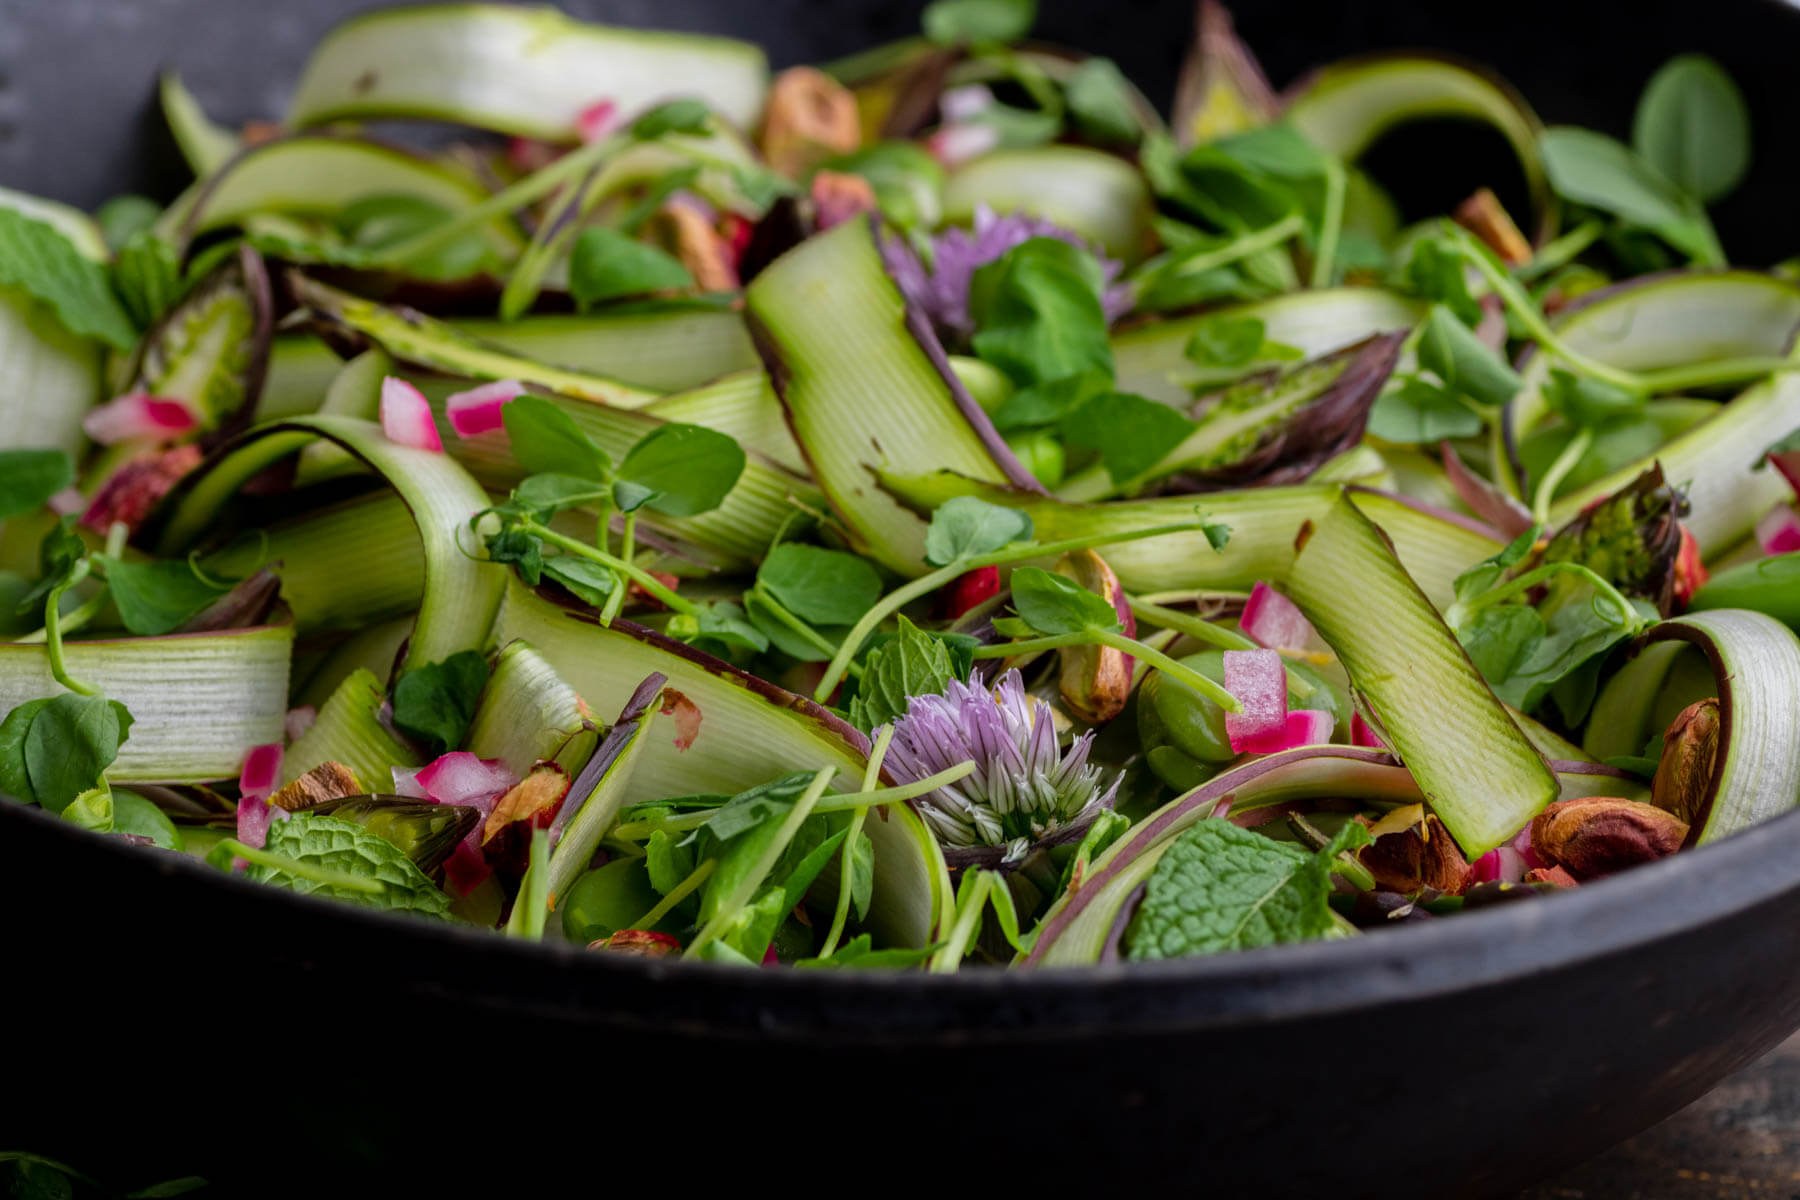 A wide black bowl filled with purple and green shaved asparagus, pistachios, fava beans, fresh herbs and purple chive flowers.